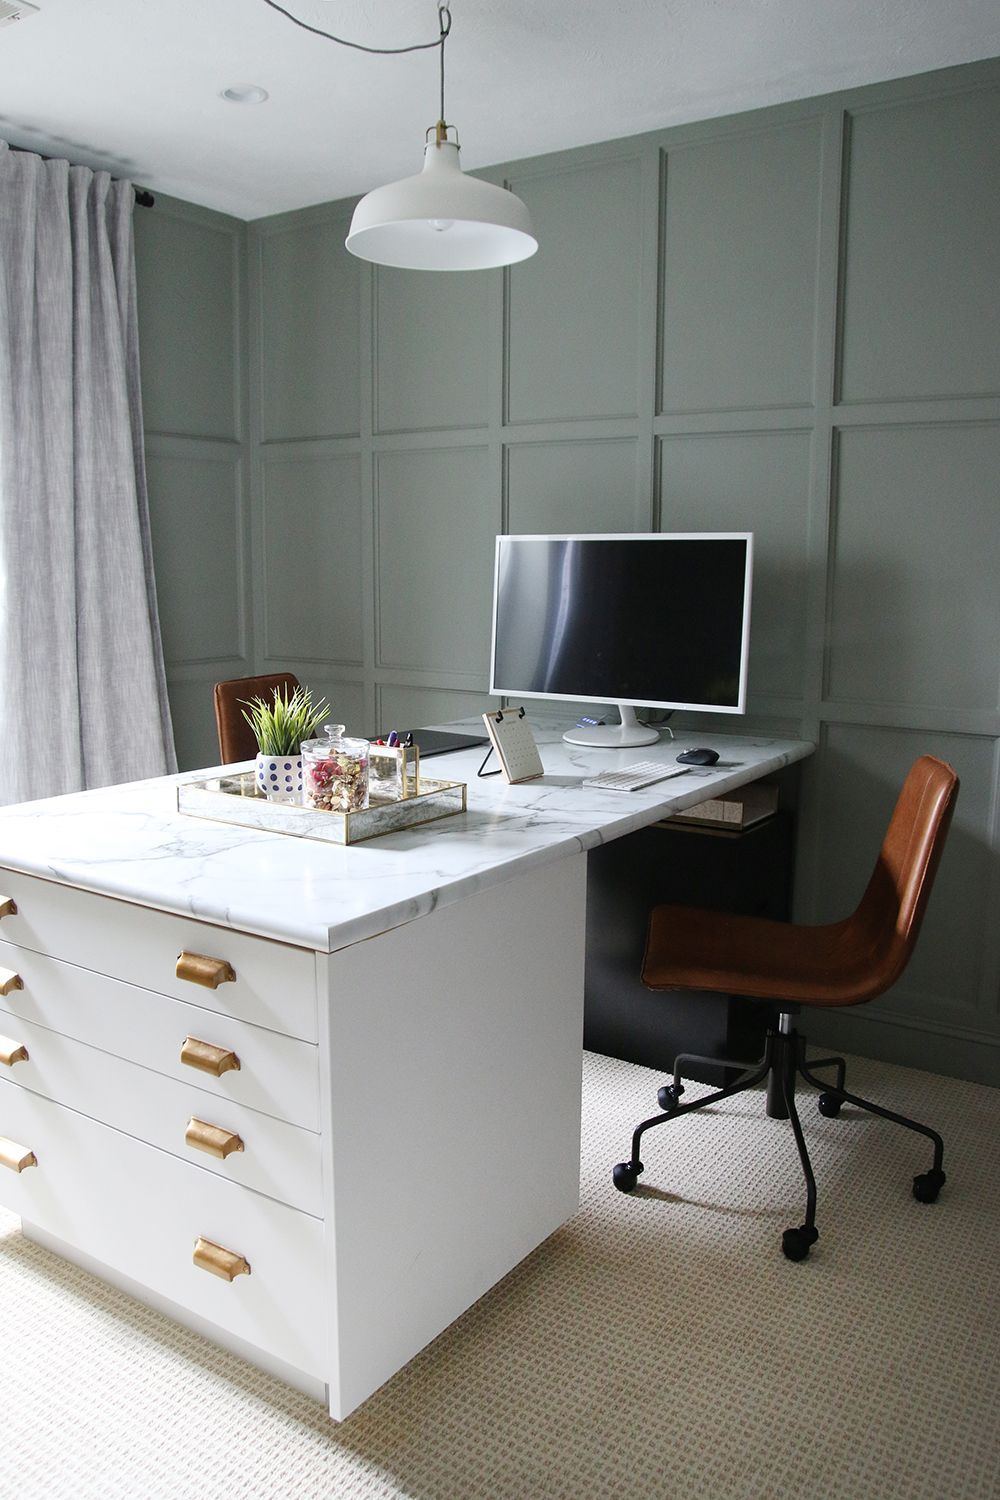 Chris Loves Julia The Chairs Are Slope Leather Swivel Office Chair From West Elm Officechair Office Desk Designs Home Office Decor Home Office Desks